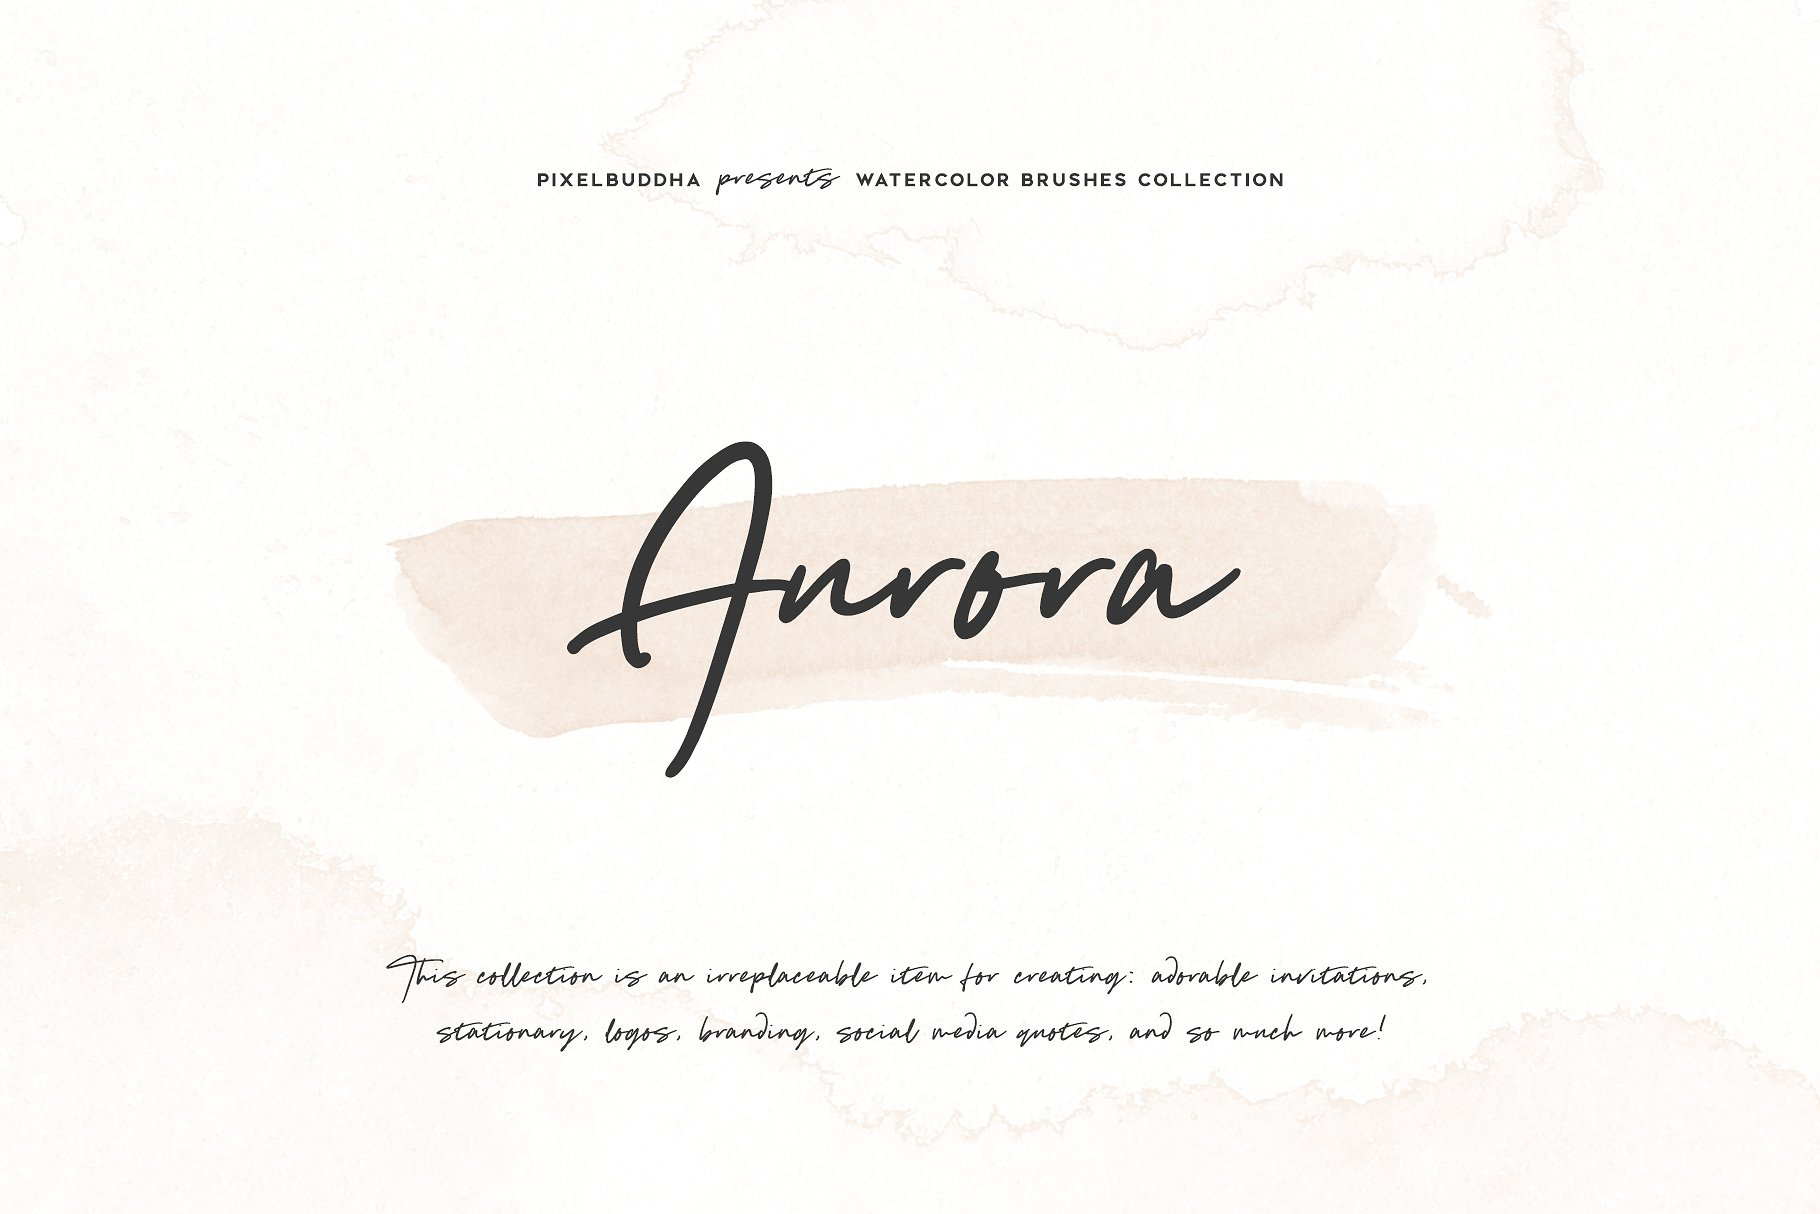 Aurora Watercolor Brushes Collection